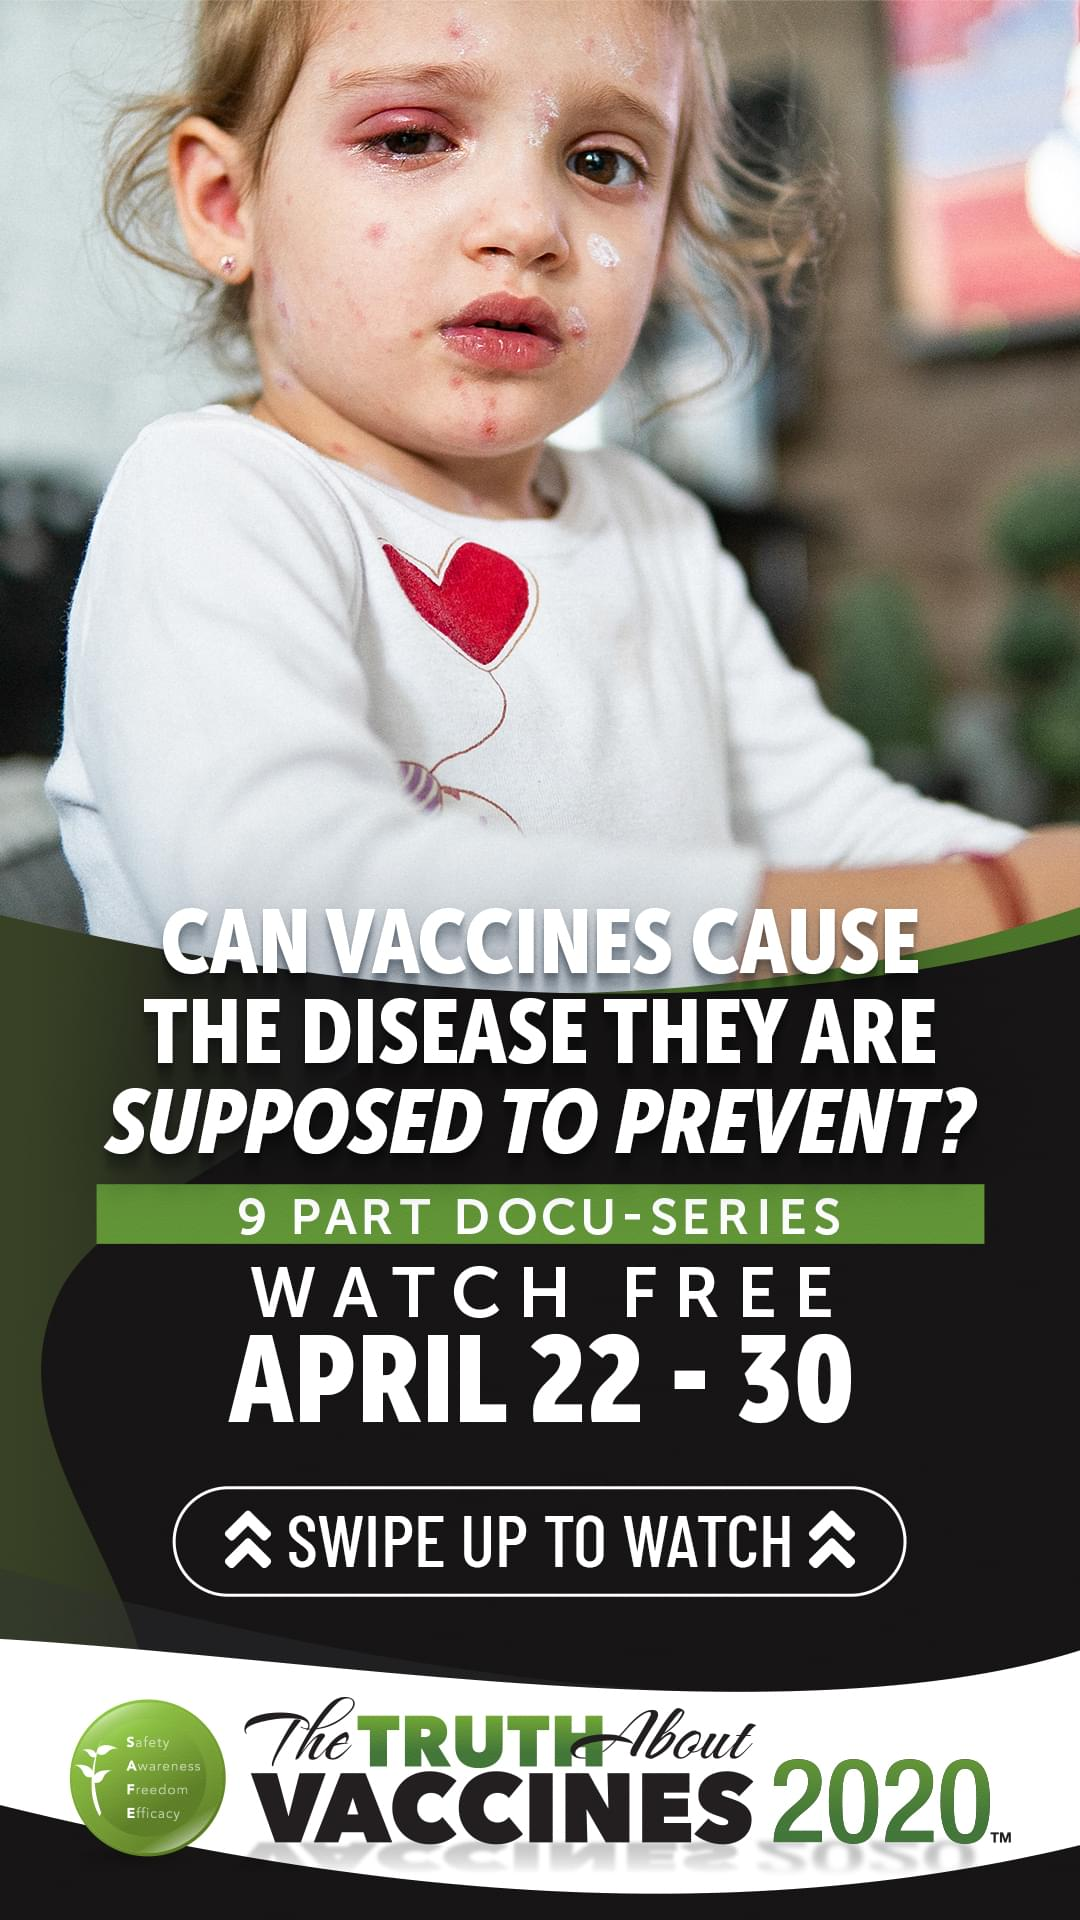 TTAV-Prelaunch-Vaccines_Cause_or_Prevent_02-IG-1080x1920-min